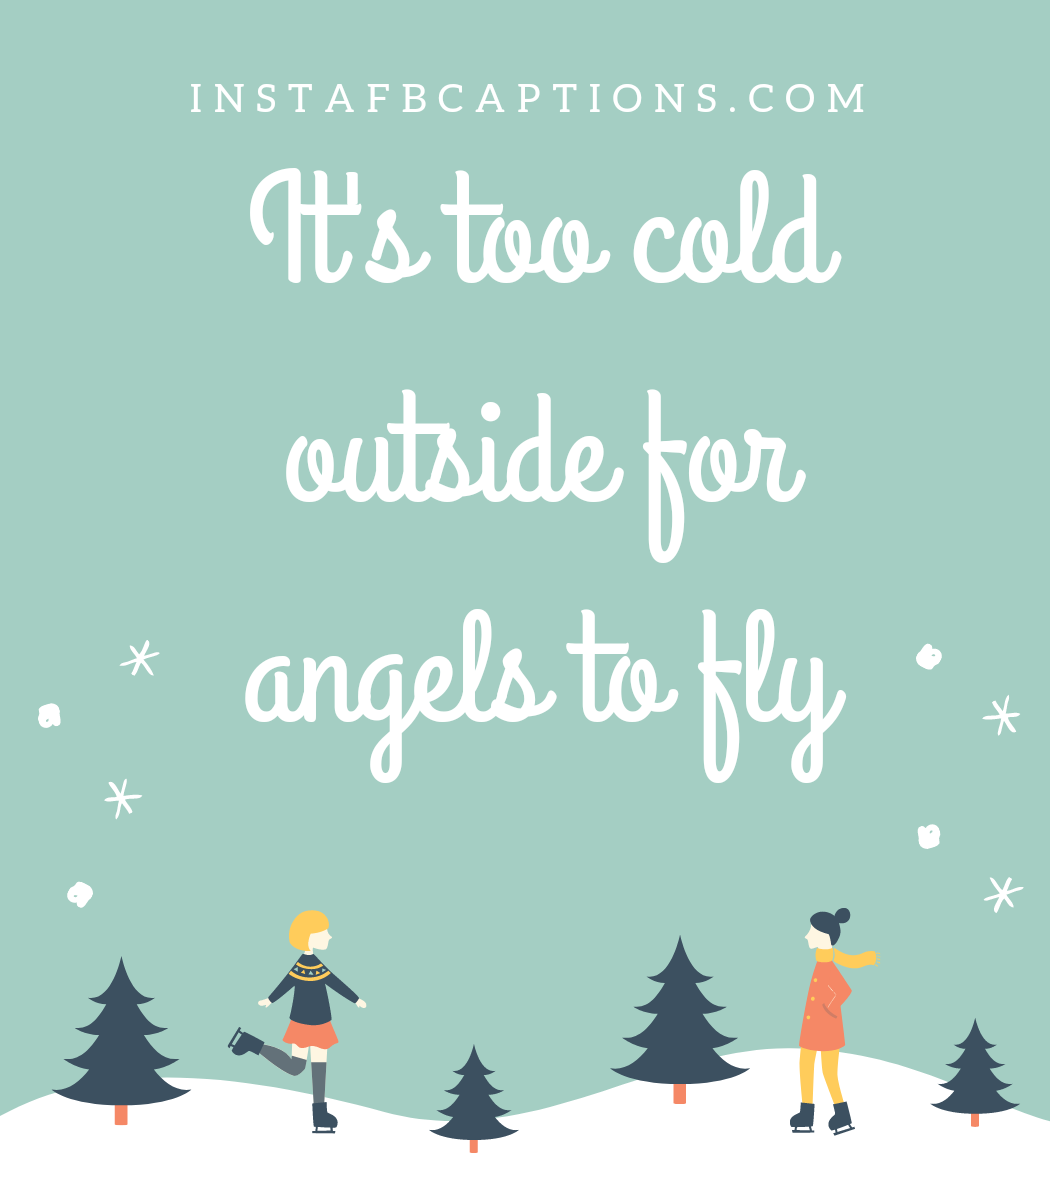 20210726 141937 0000  - 20210726 141937 0000 - 100+ SNOW ANGEL Instagram Captions & Quotes in 2021